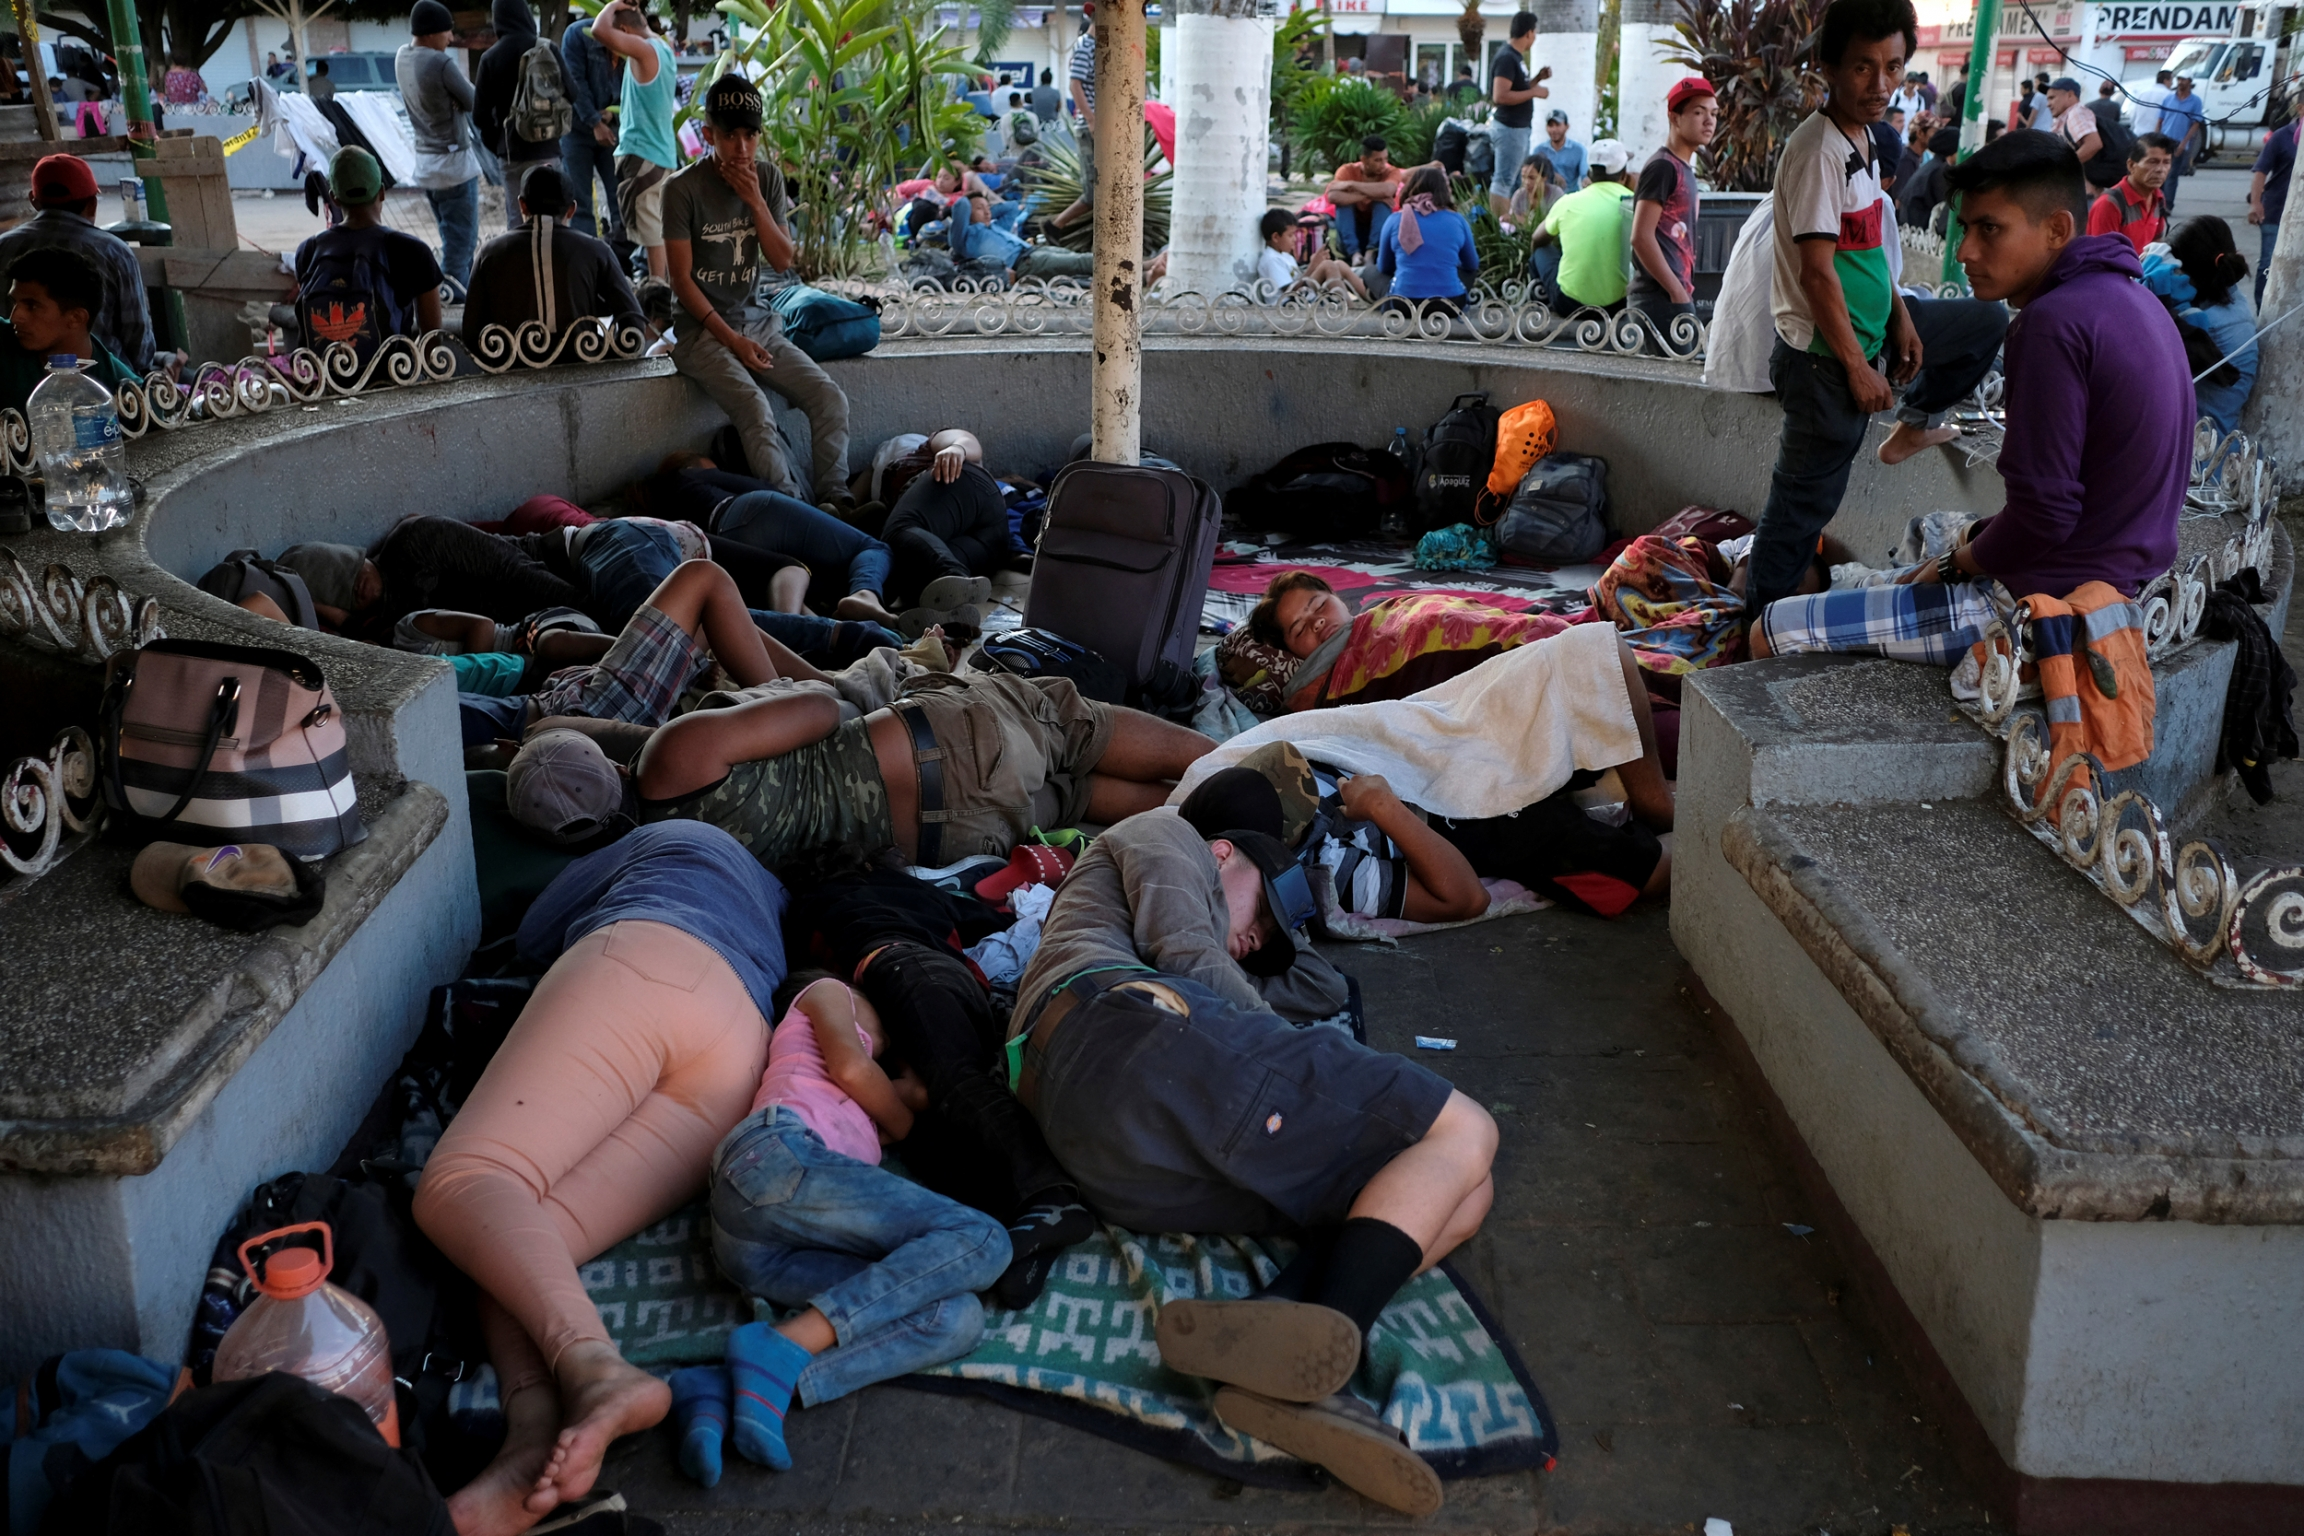 A group of people sleep in a concrete structure in a public park